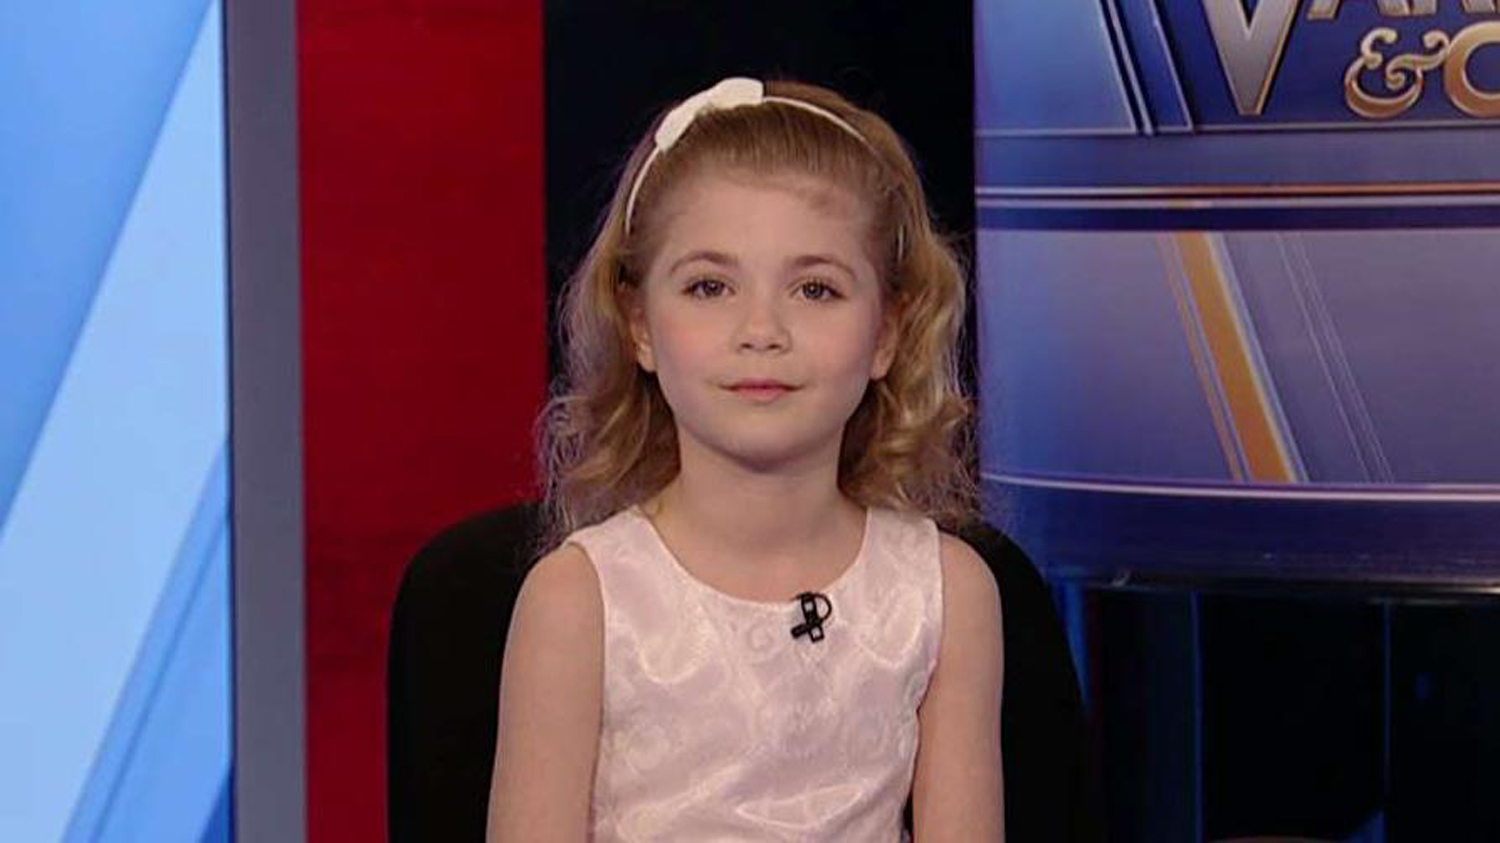 """You can learn a lot from this 4th grader: """"I want to make $3 million"""""""